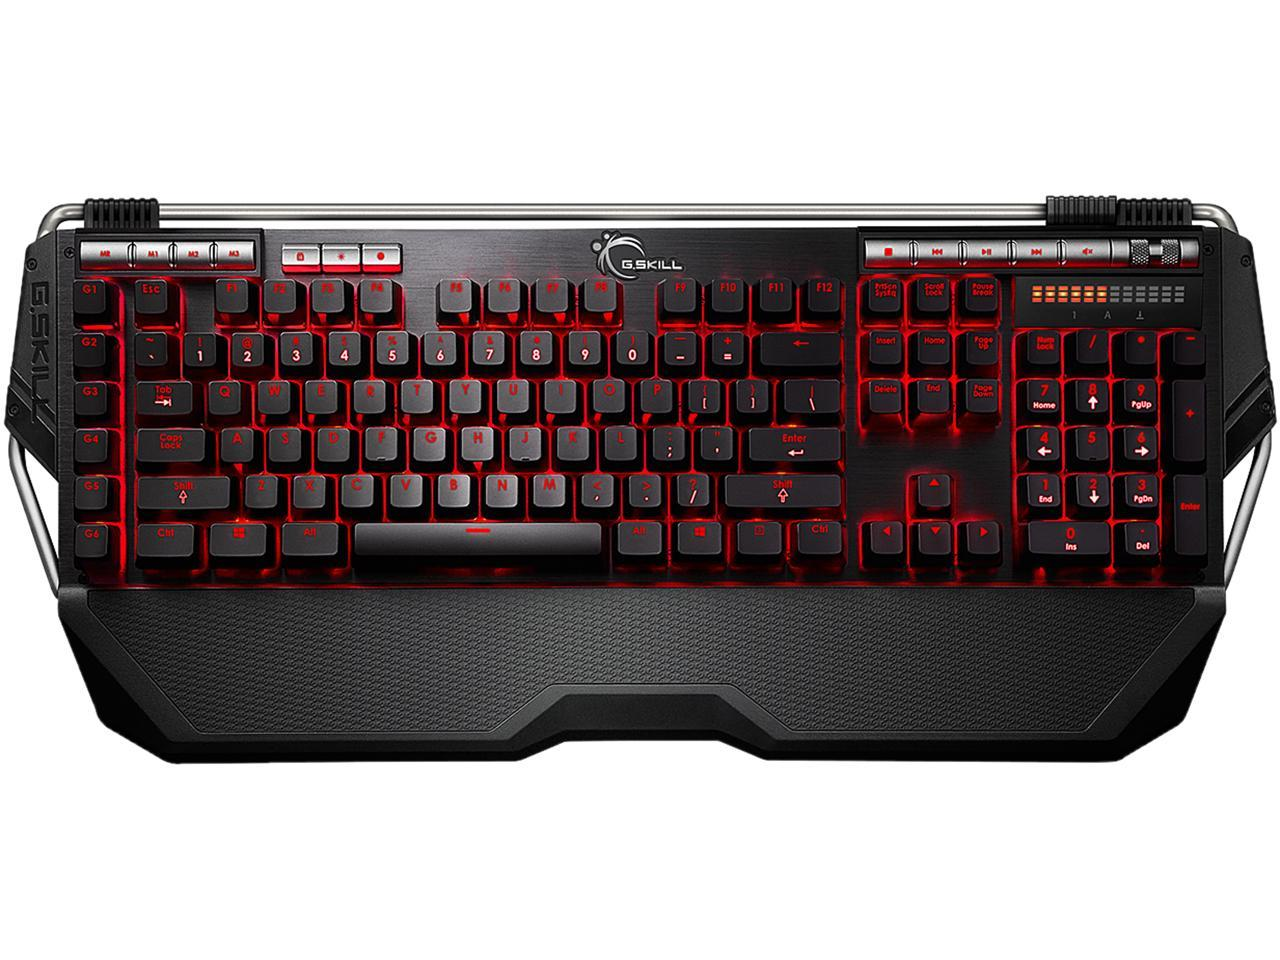 G.SKILL RIPJAWS KM780R MX Mechanical Gaming Keyboard - Cherry MX Blue